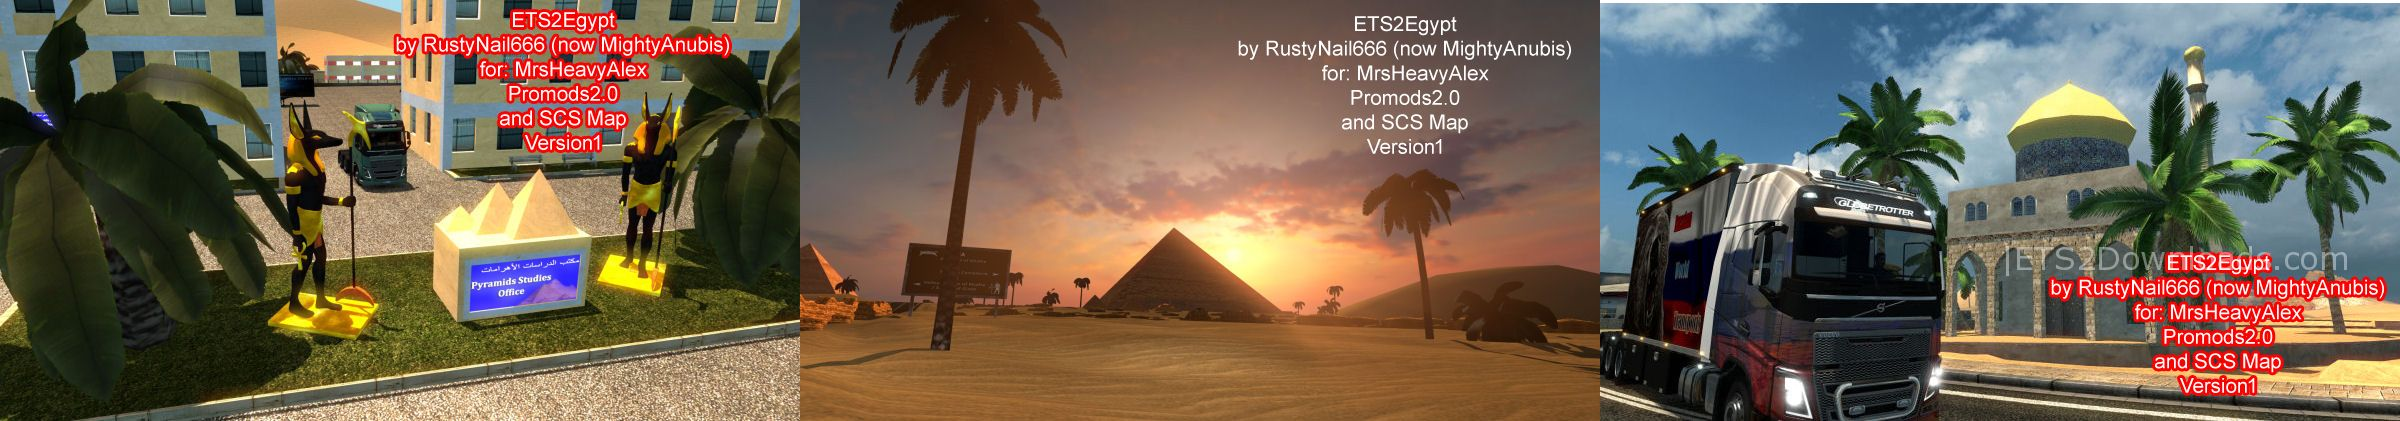 egypt-map-addon-1